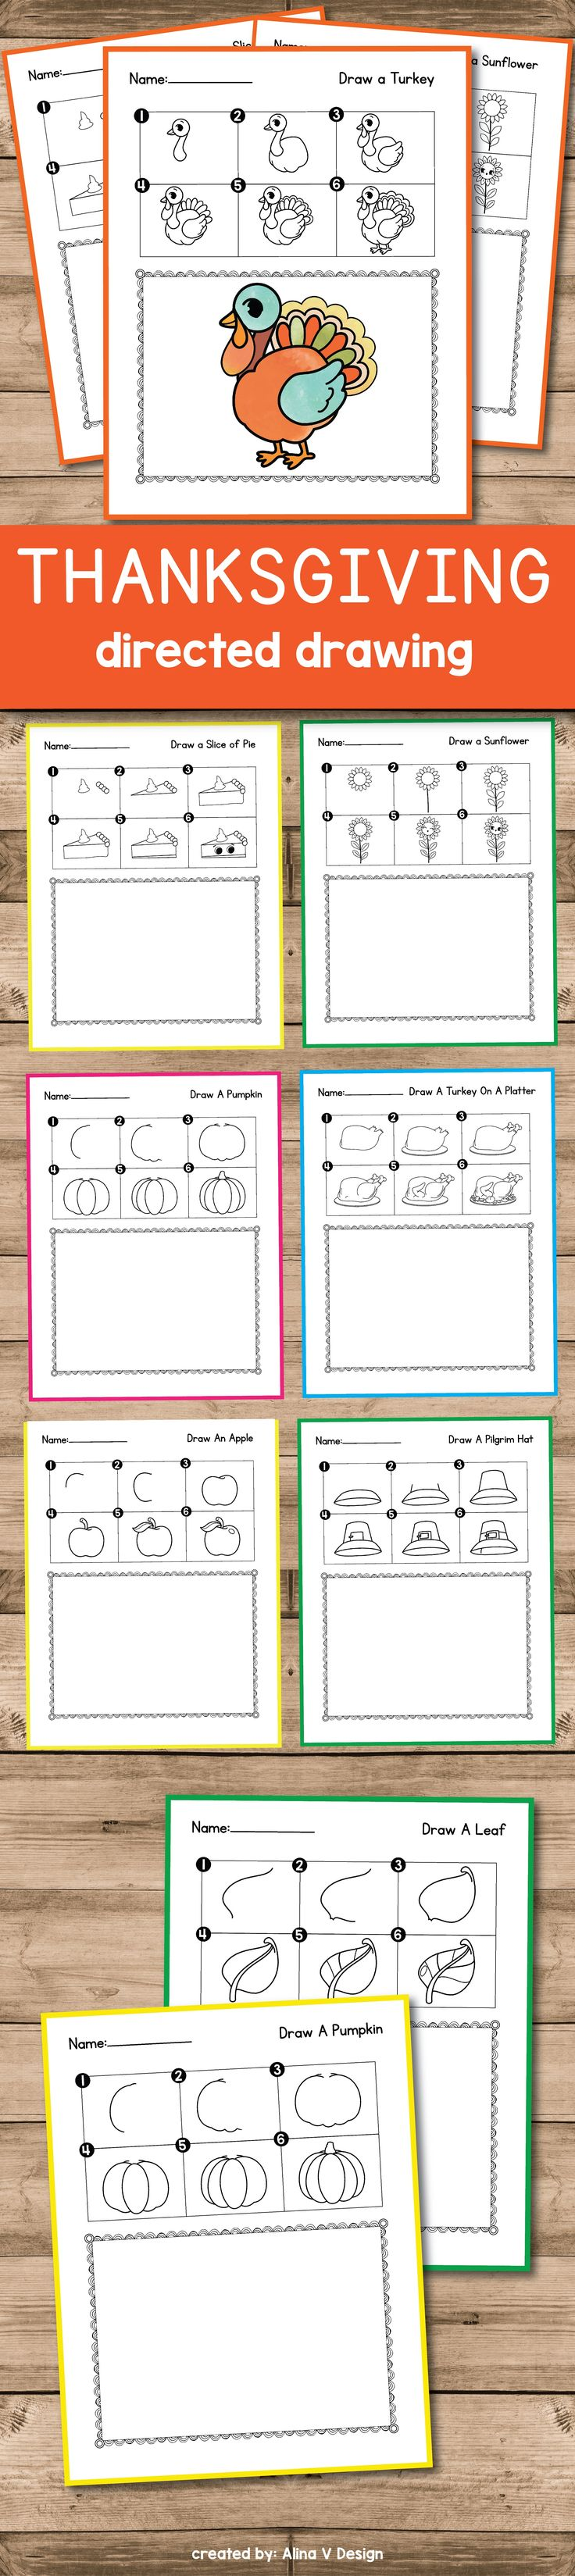 Thanksgiving directed drawing activities for preschool, kindergarten or first grade kids that you an use this October. Your students will learn in this small lessons how to draw a turkey, a pumpkin, a leaf and other cute fall and Halloween elements - the perfect morning work.